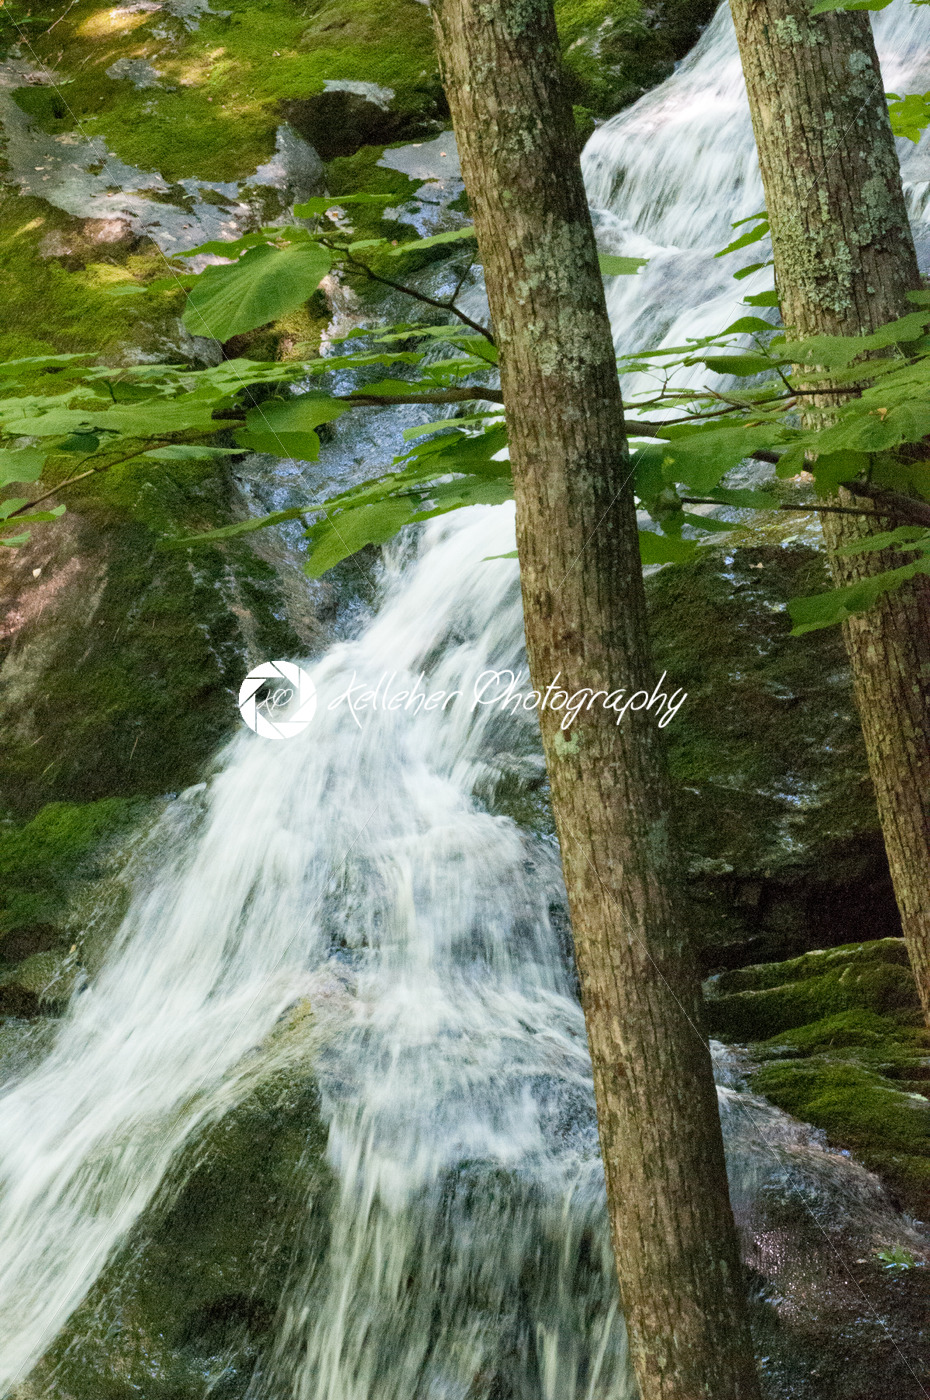 Crabtree Falls along the Blue Ridge Parkway near Asheville North Carolina - Kelleher Photography Store